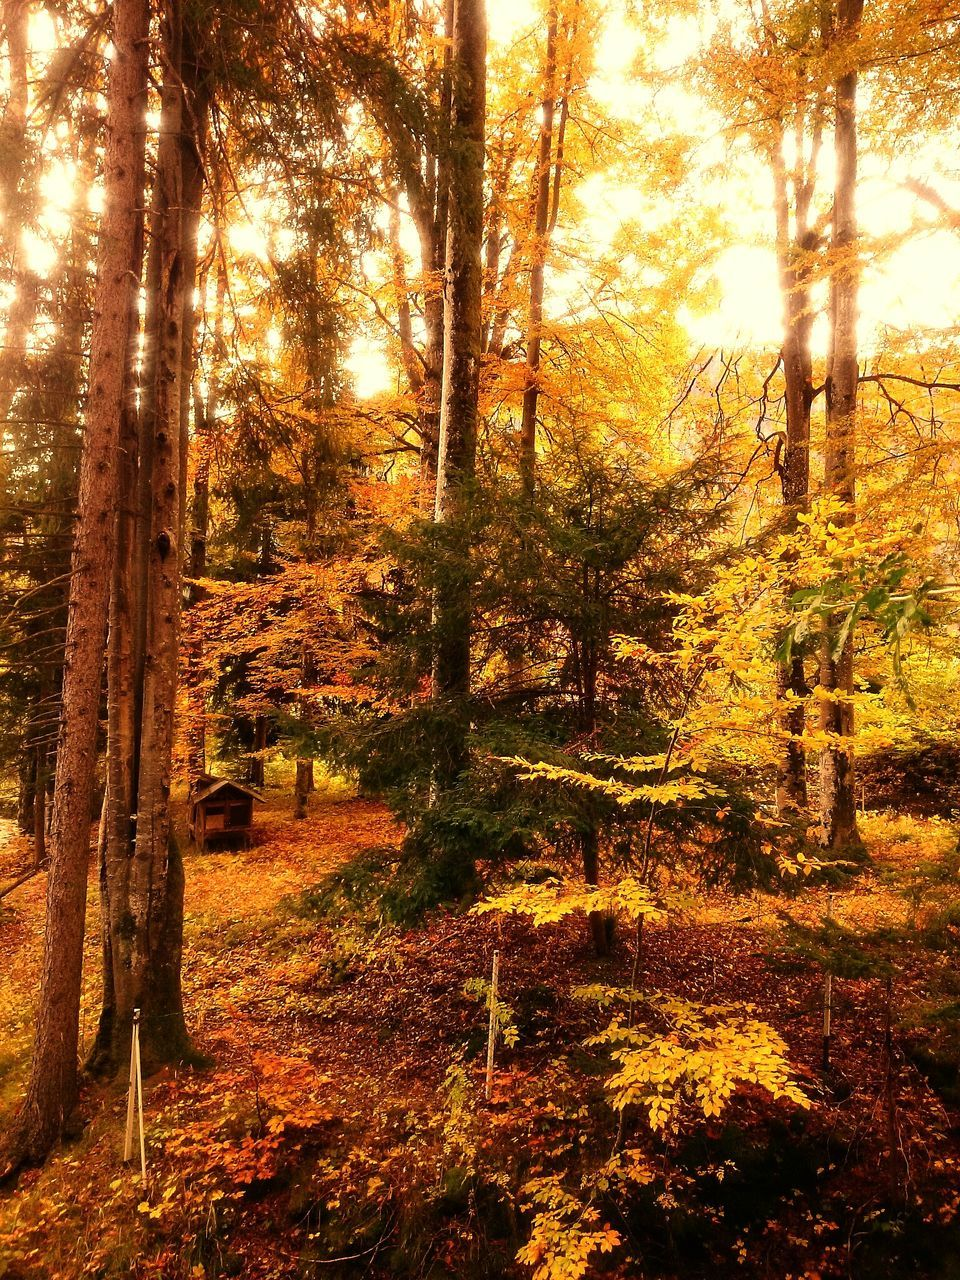 tree, nature, tranquility, autumn, tranquil scene, forest, beauty in nature, change, scenics, no people, tree trunk, outdoors, landscape, day, growth, woodland, sunlight, travel destinations, sky